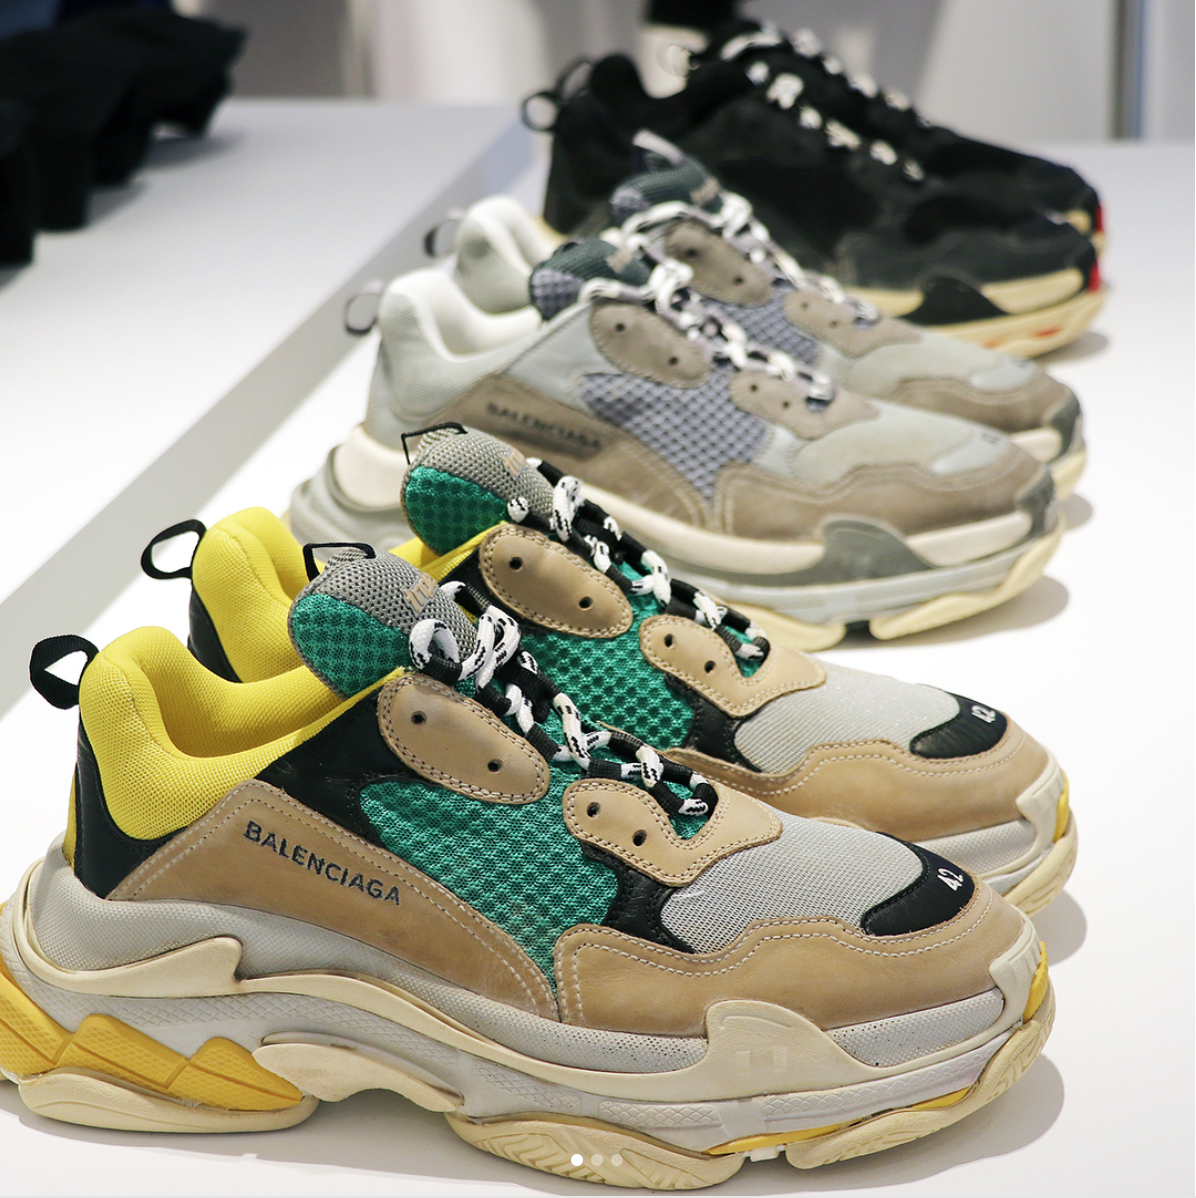 Balenciaga Men's Triple S Retro Sneaker